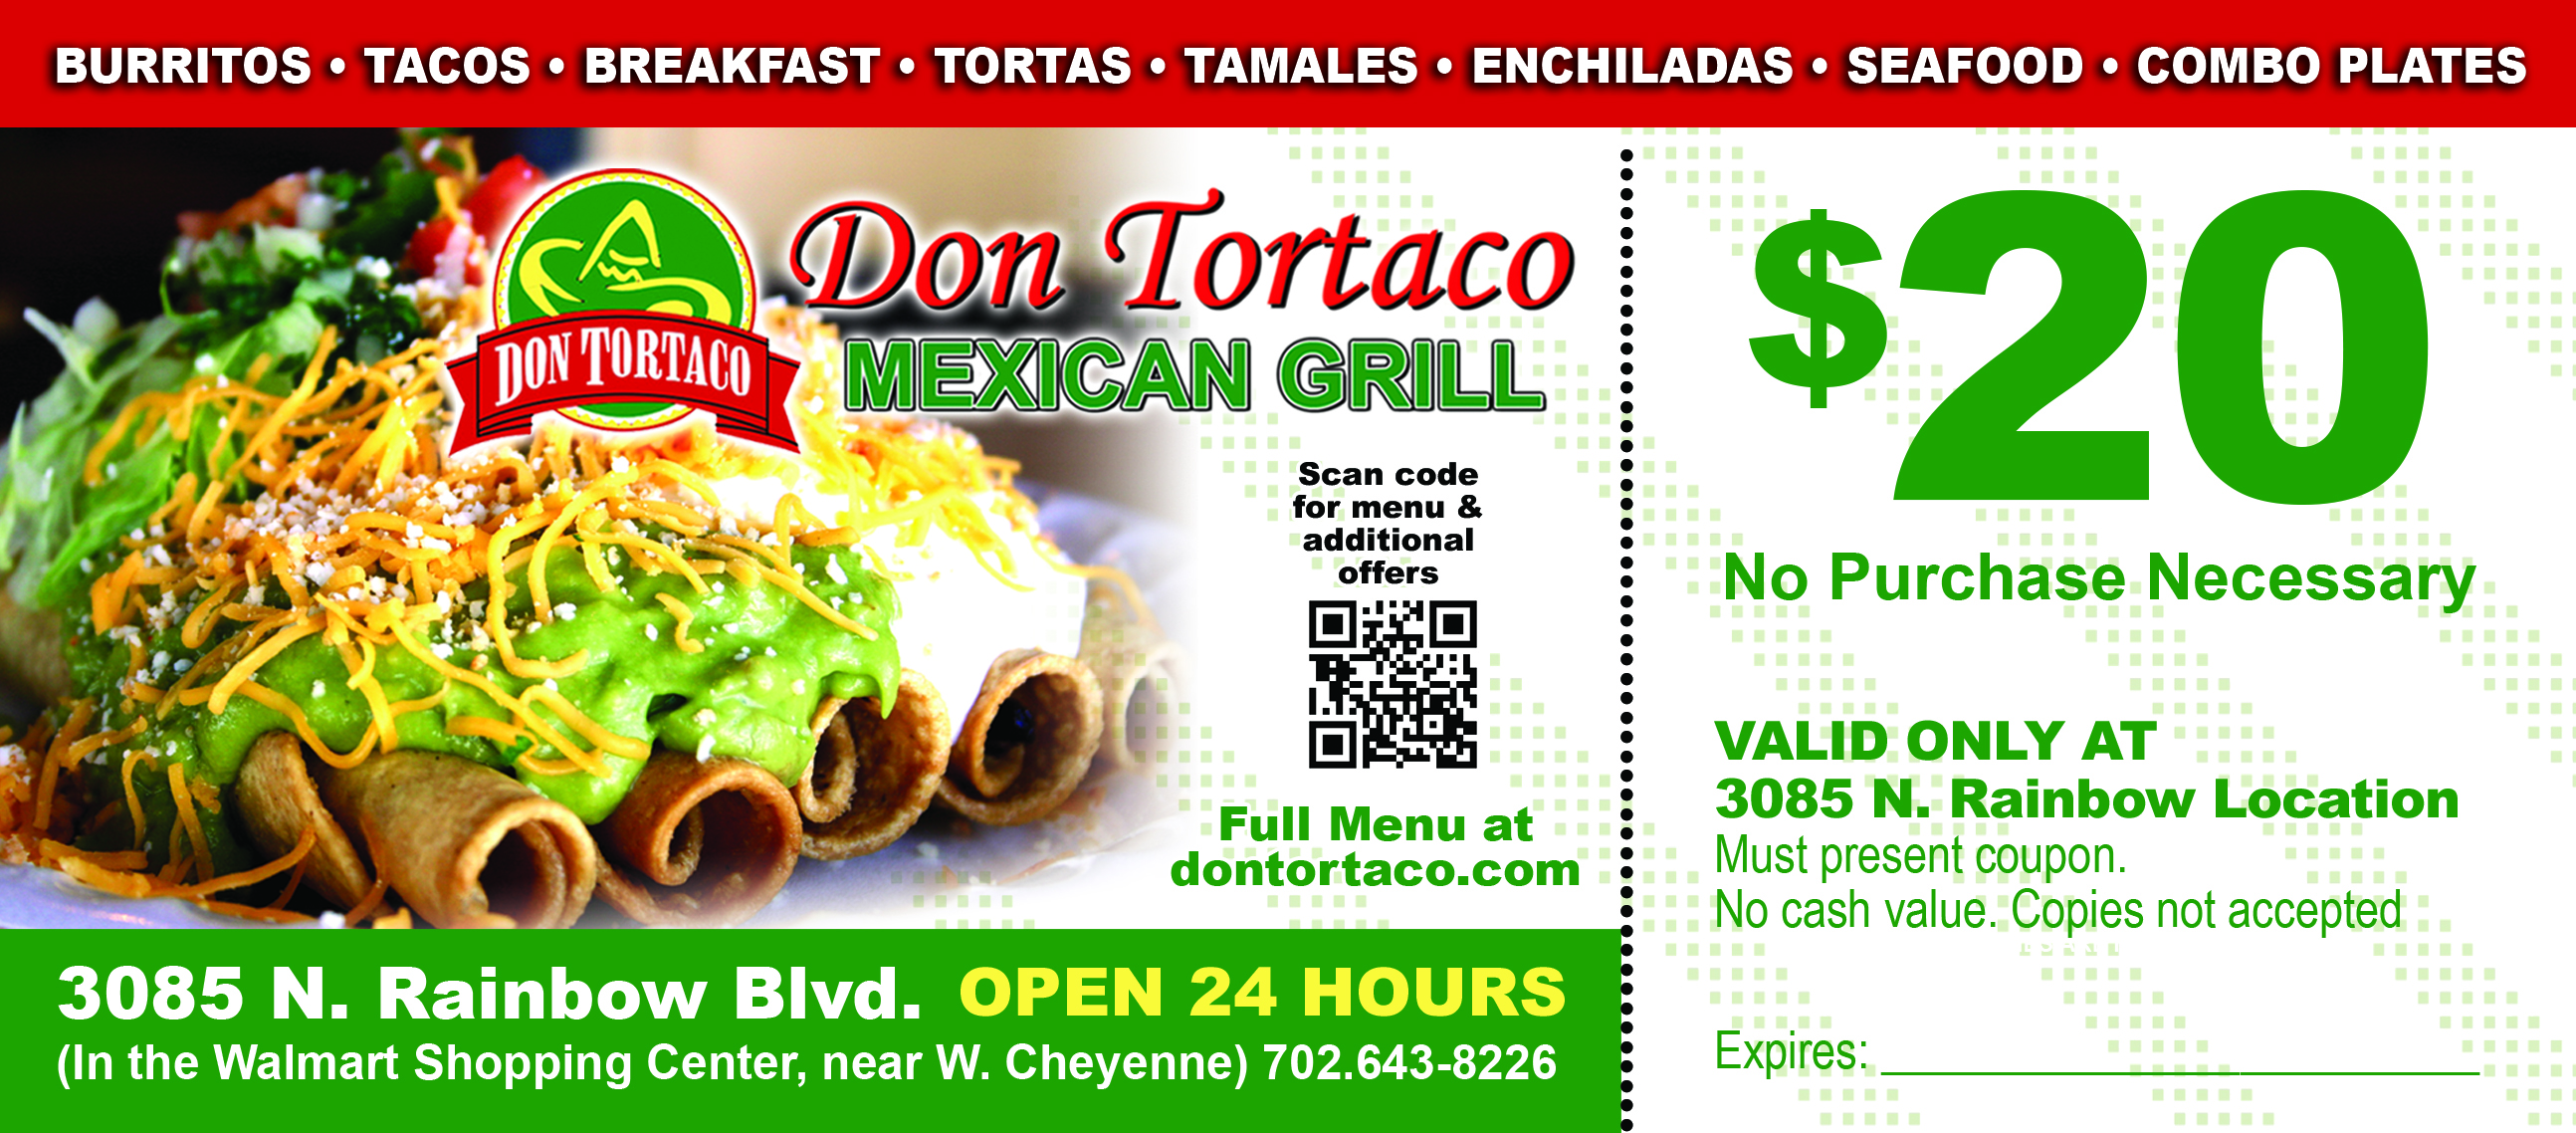 DonTortaco$20couponFrontNew